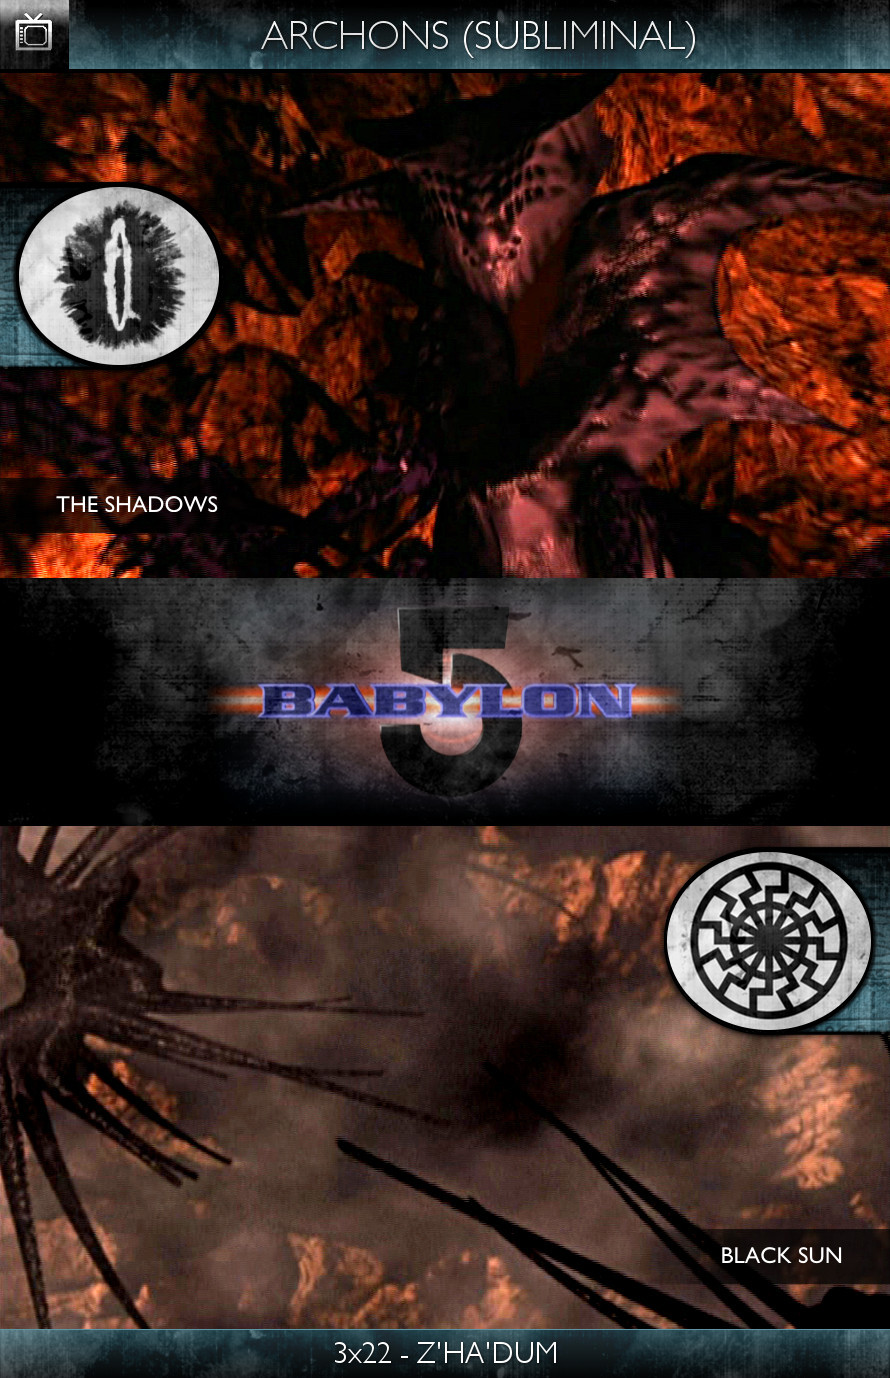 Archons - Babylon 5 (1994) - 3x22-Z'ha'dum - The Shadows